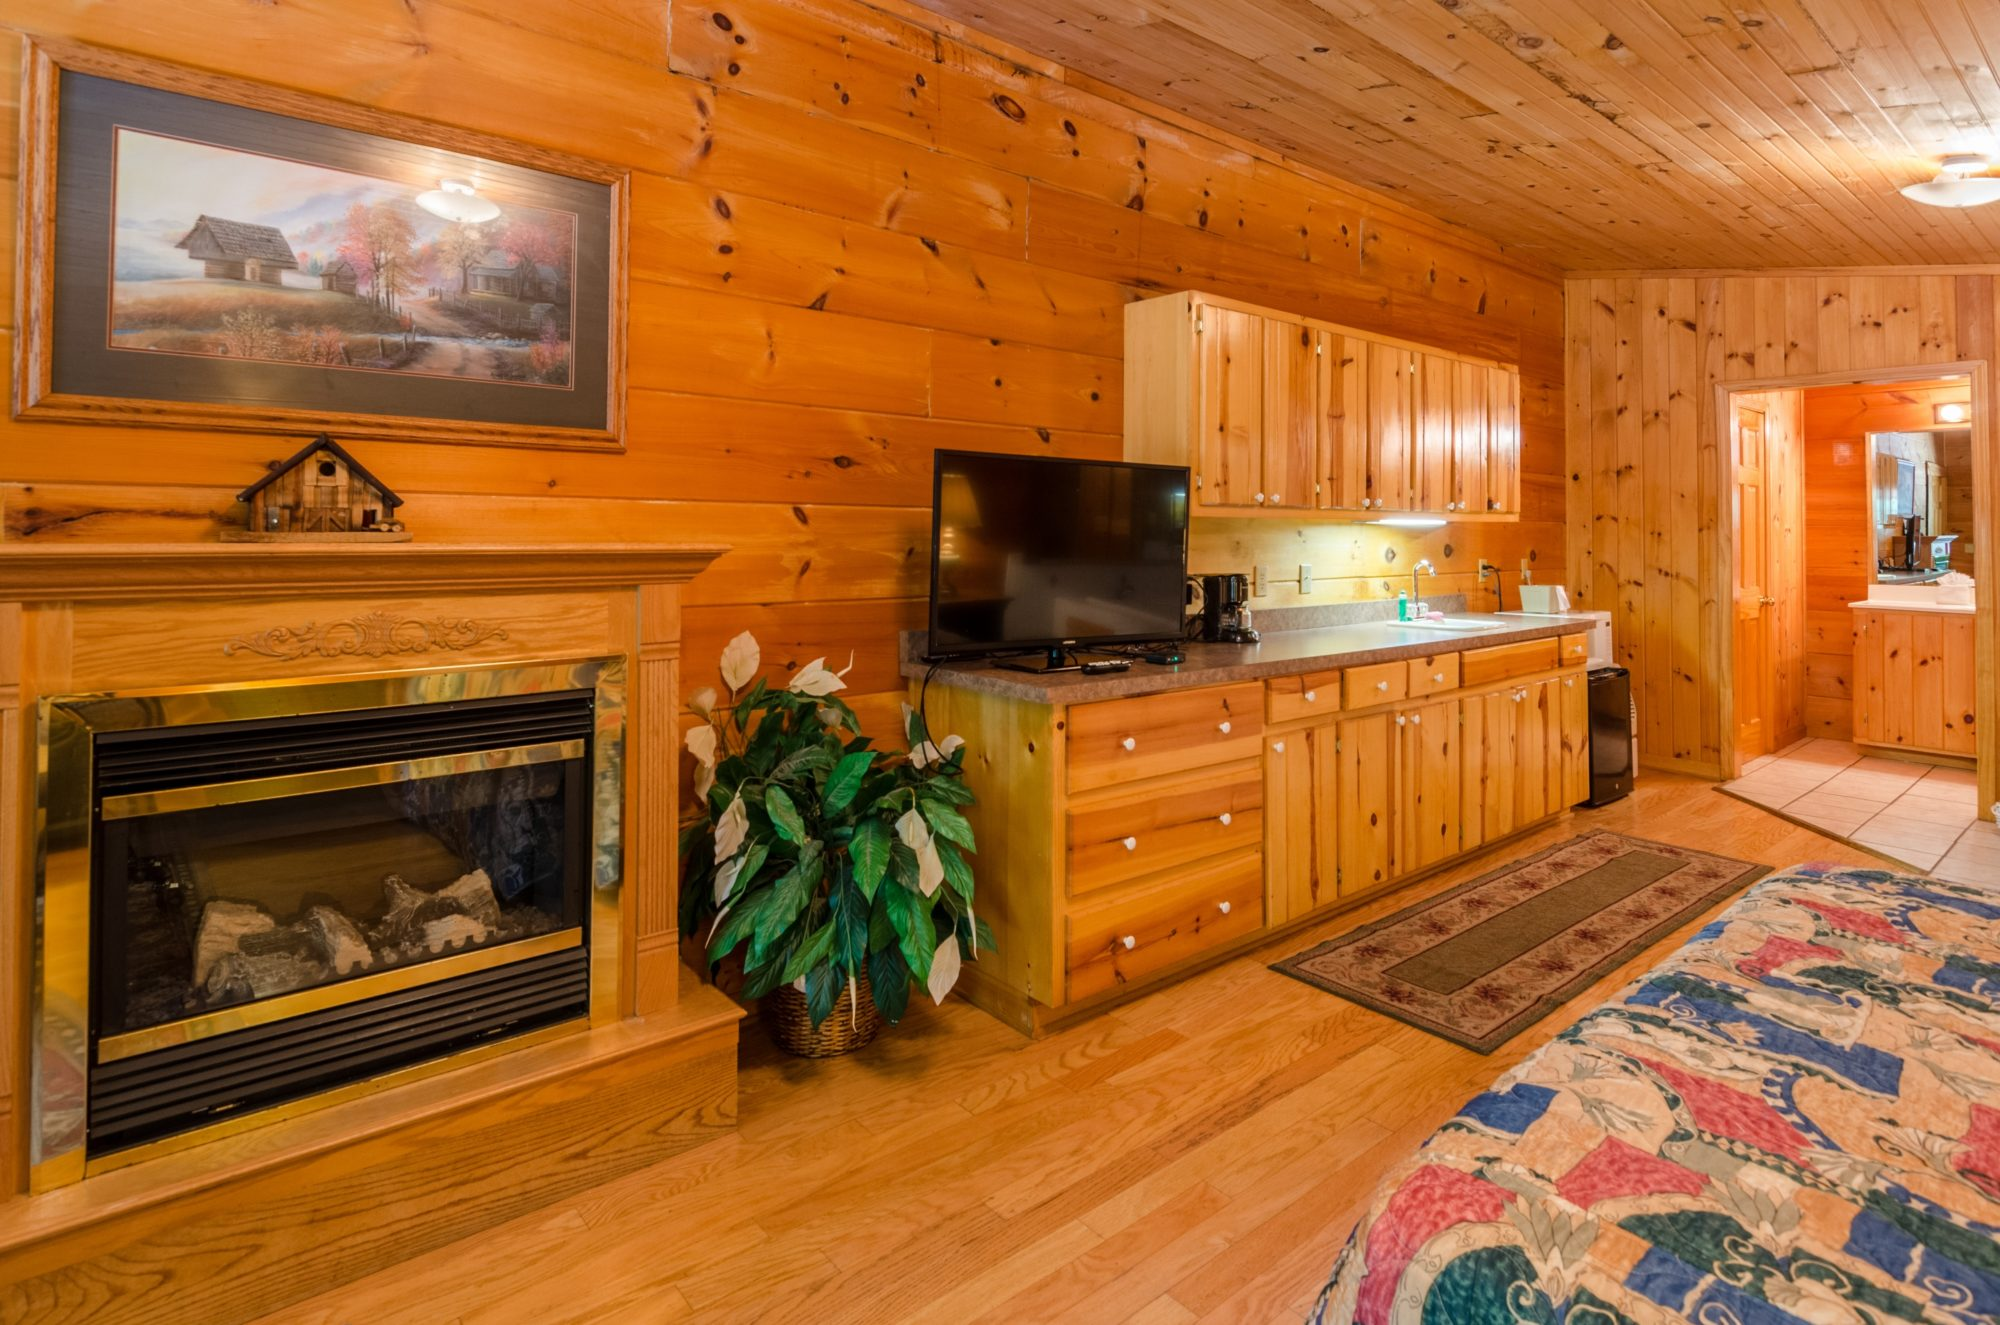 Wood panelled walls and floor with small rug, with , fireplace with imitation log fire, wall mounted art, kitchen are with wall and base cabinets and drawers, flat screen fridge, small fridge, microwave, ice bucket, archway to bathroom area with tiled floor,